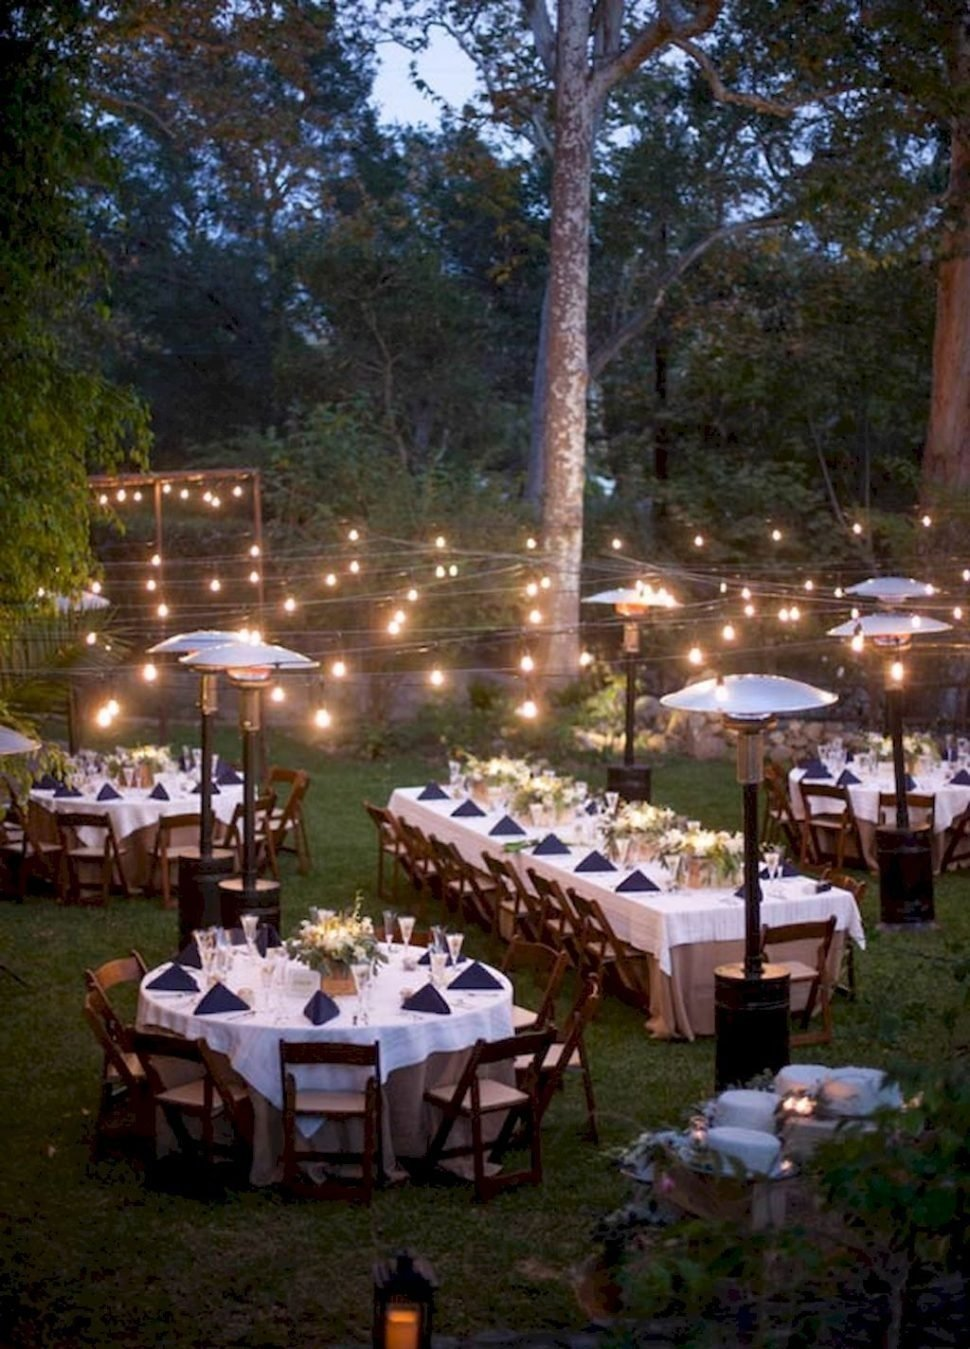 10 Lovely Wedding Rehearsal Dinner Ideas On A Budget wedding backyard wedding rehearsal dinner ideas for decor small on 2020